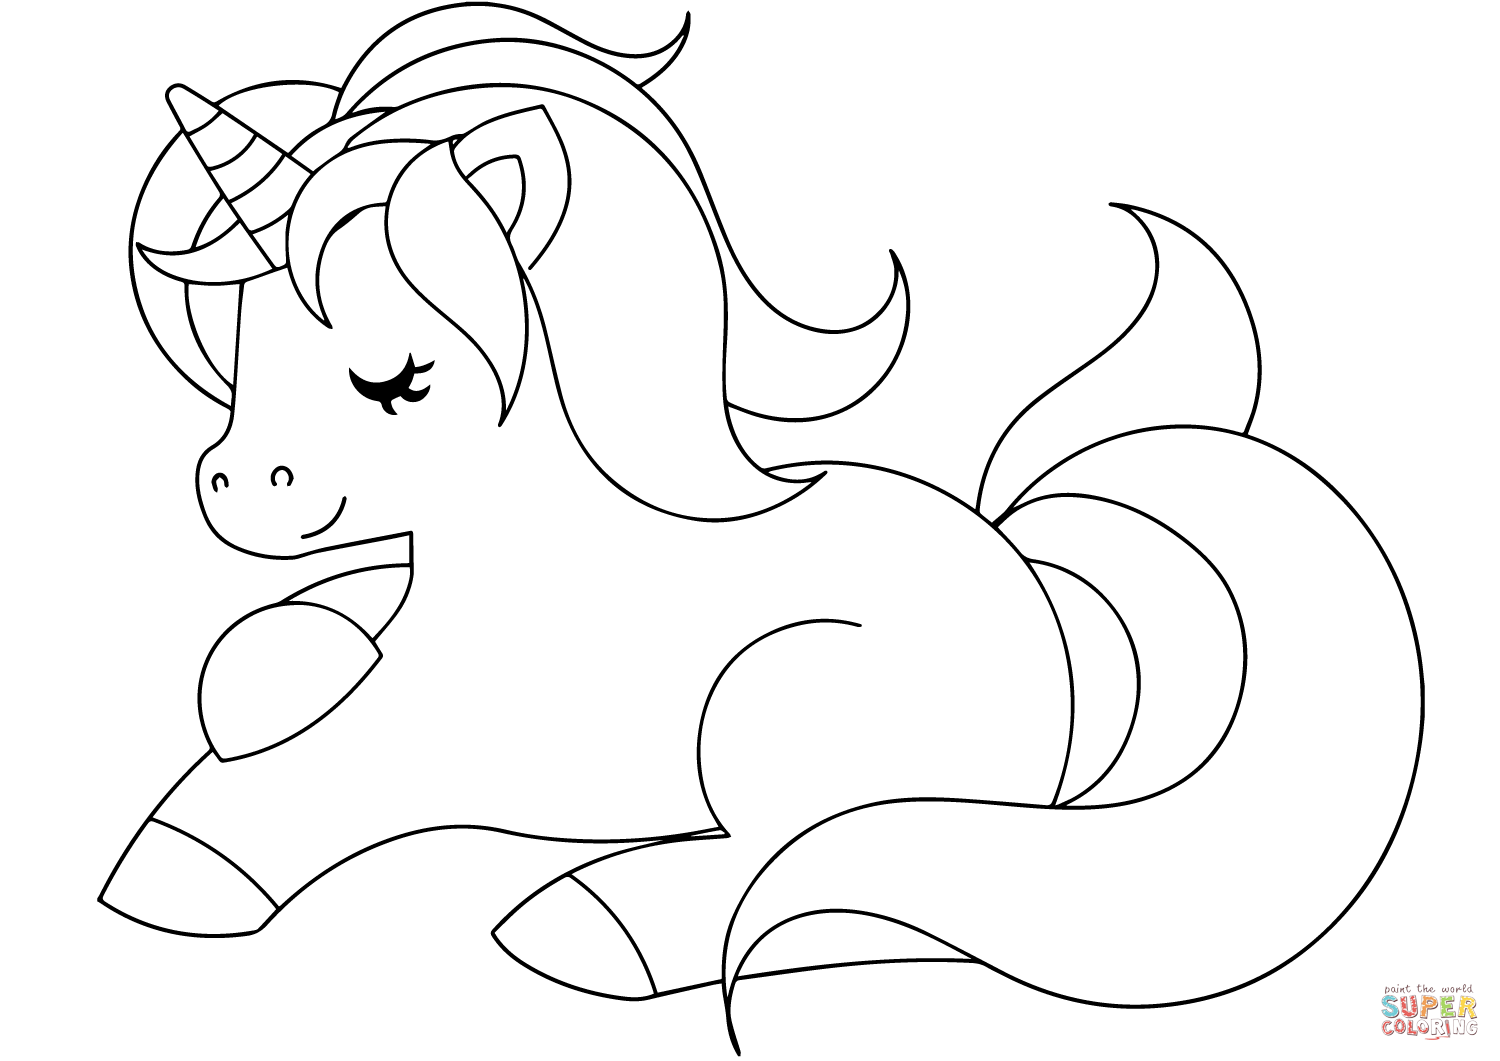 coloring unicorn kids drawing 35 unicorn coloring pages for kids visual arts ideas unicorn drawing kids coloring